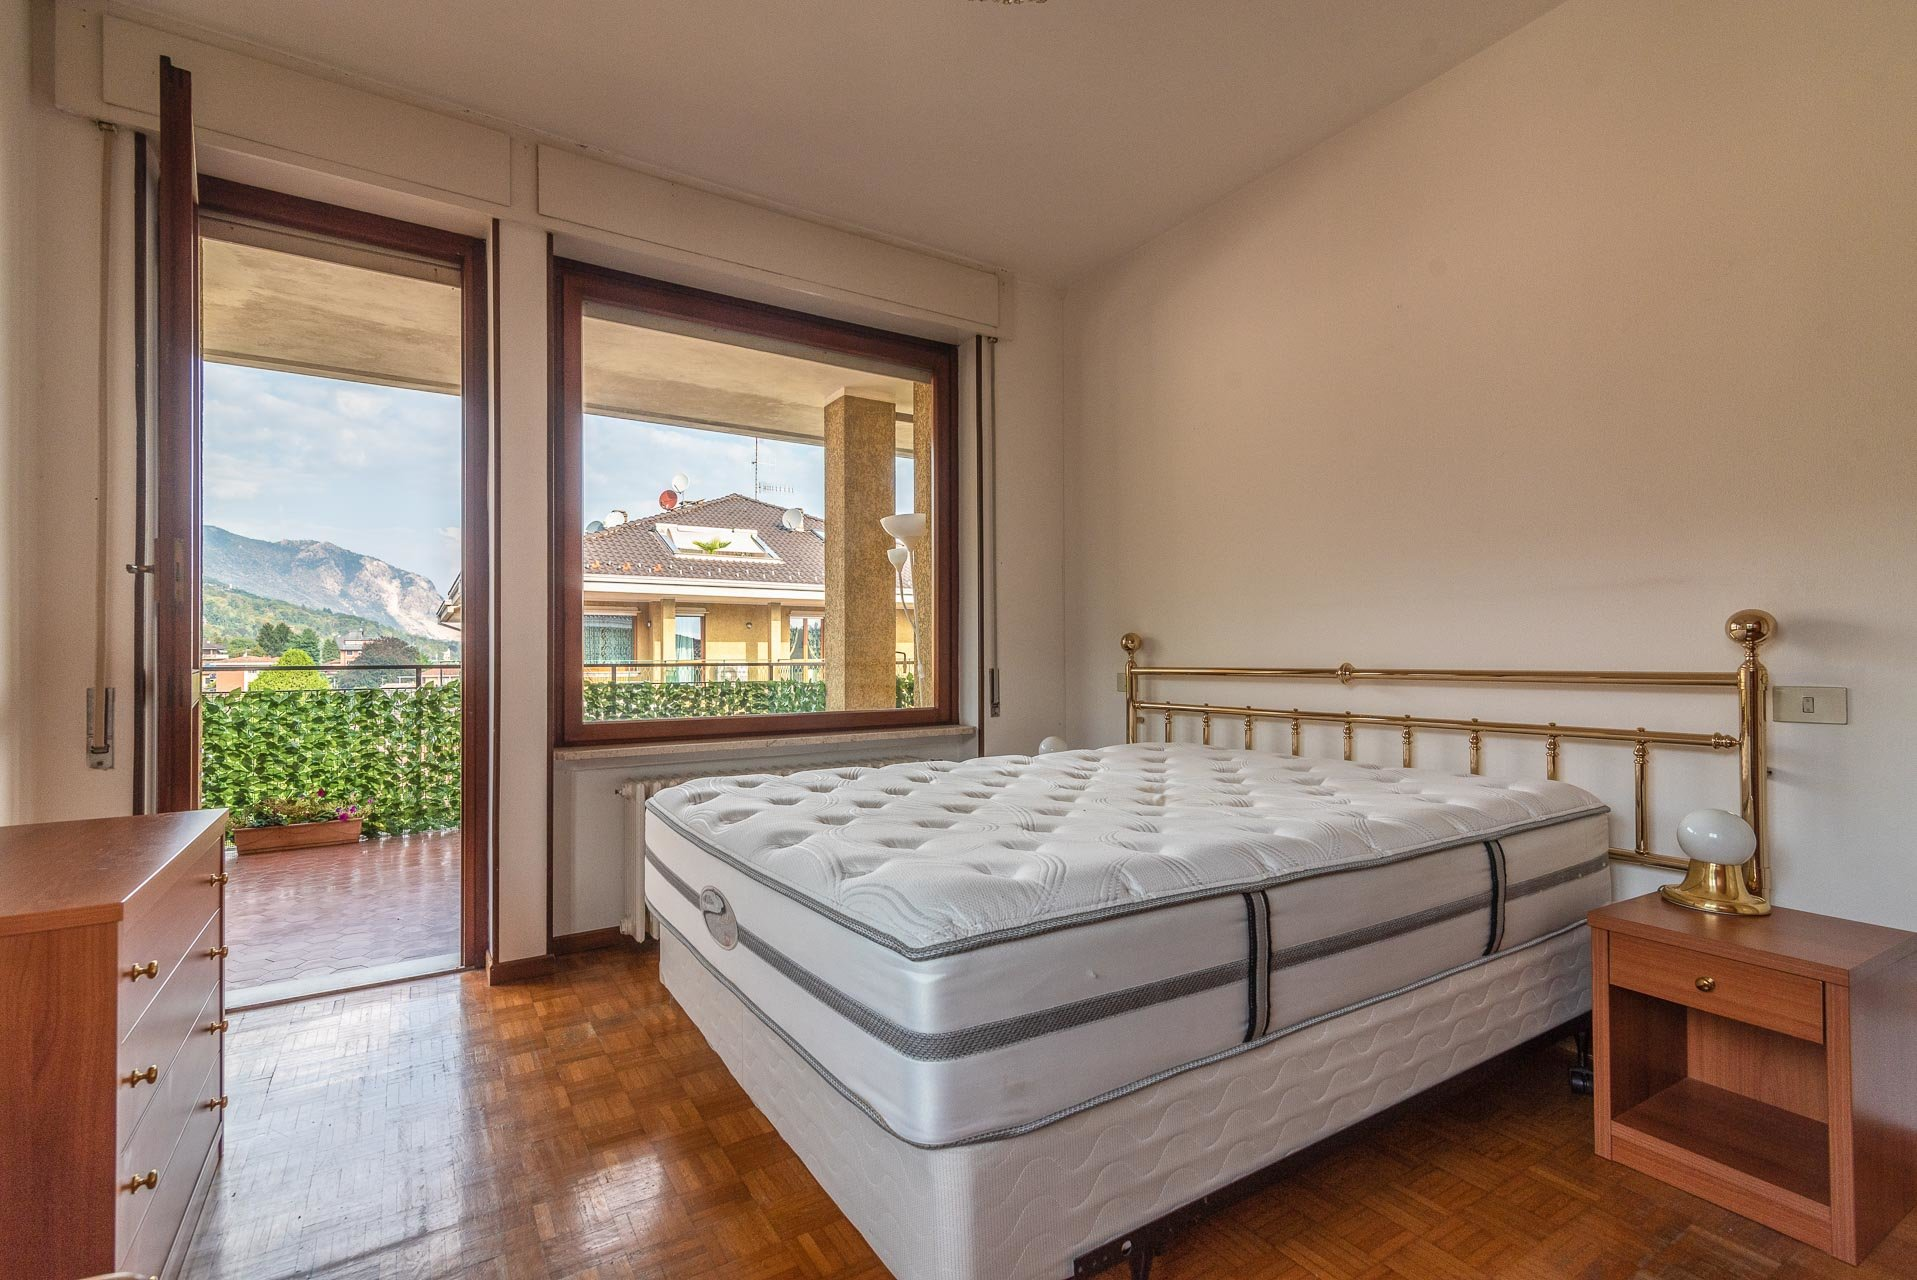 Apartment for rent in Stresa - master bedroom